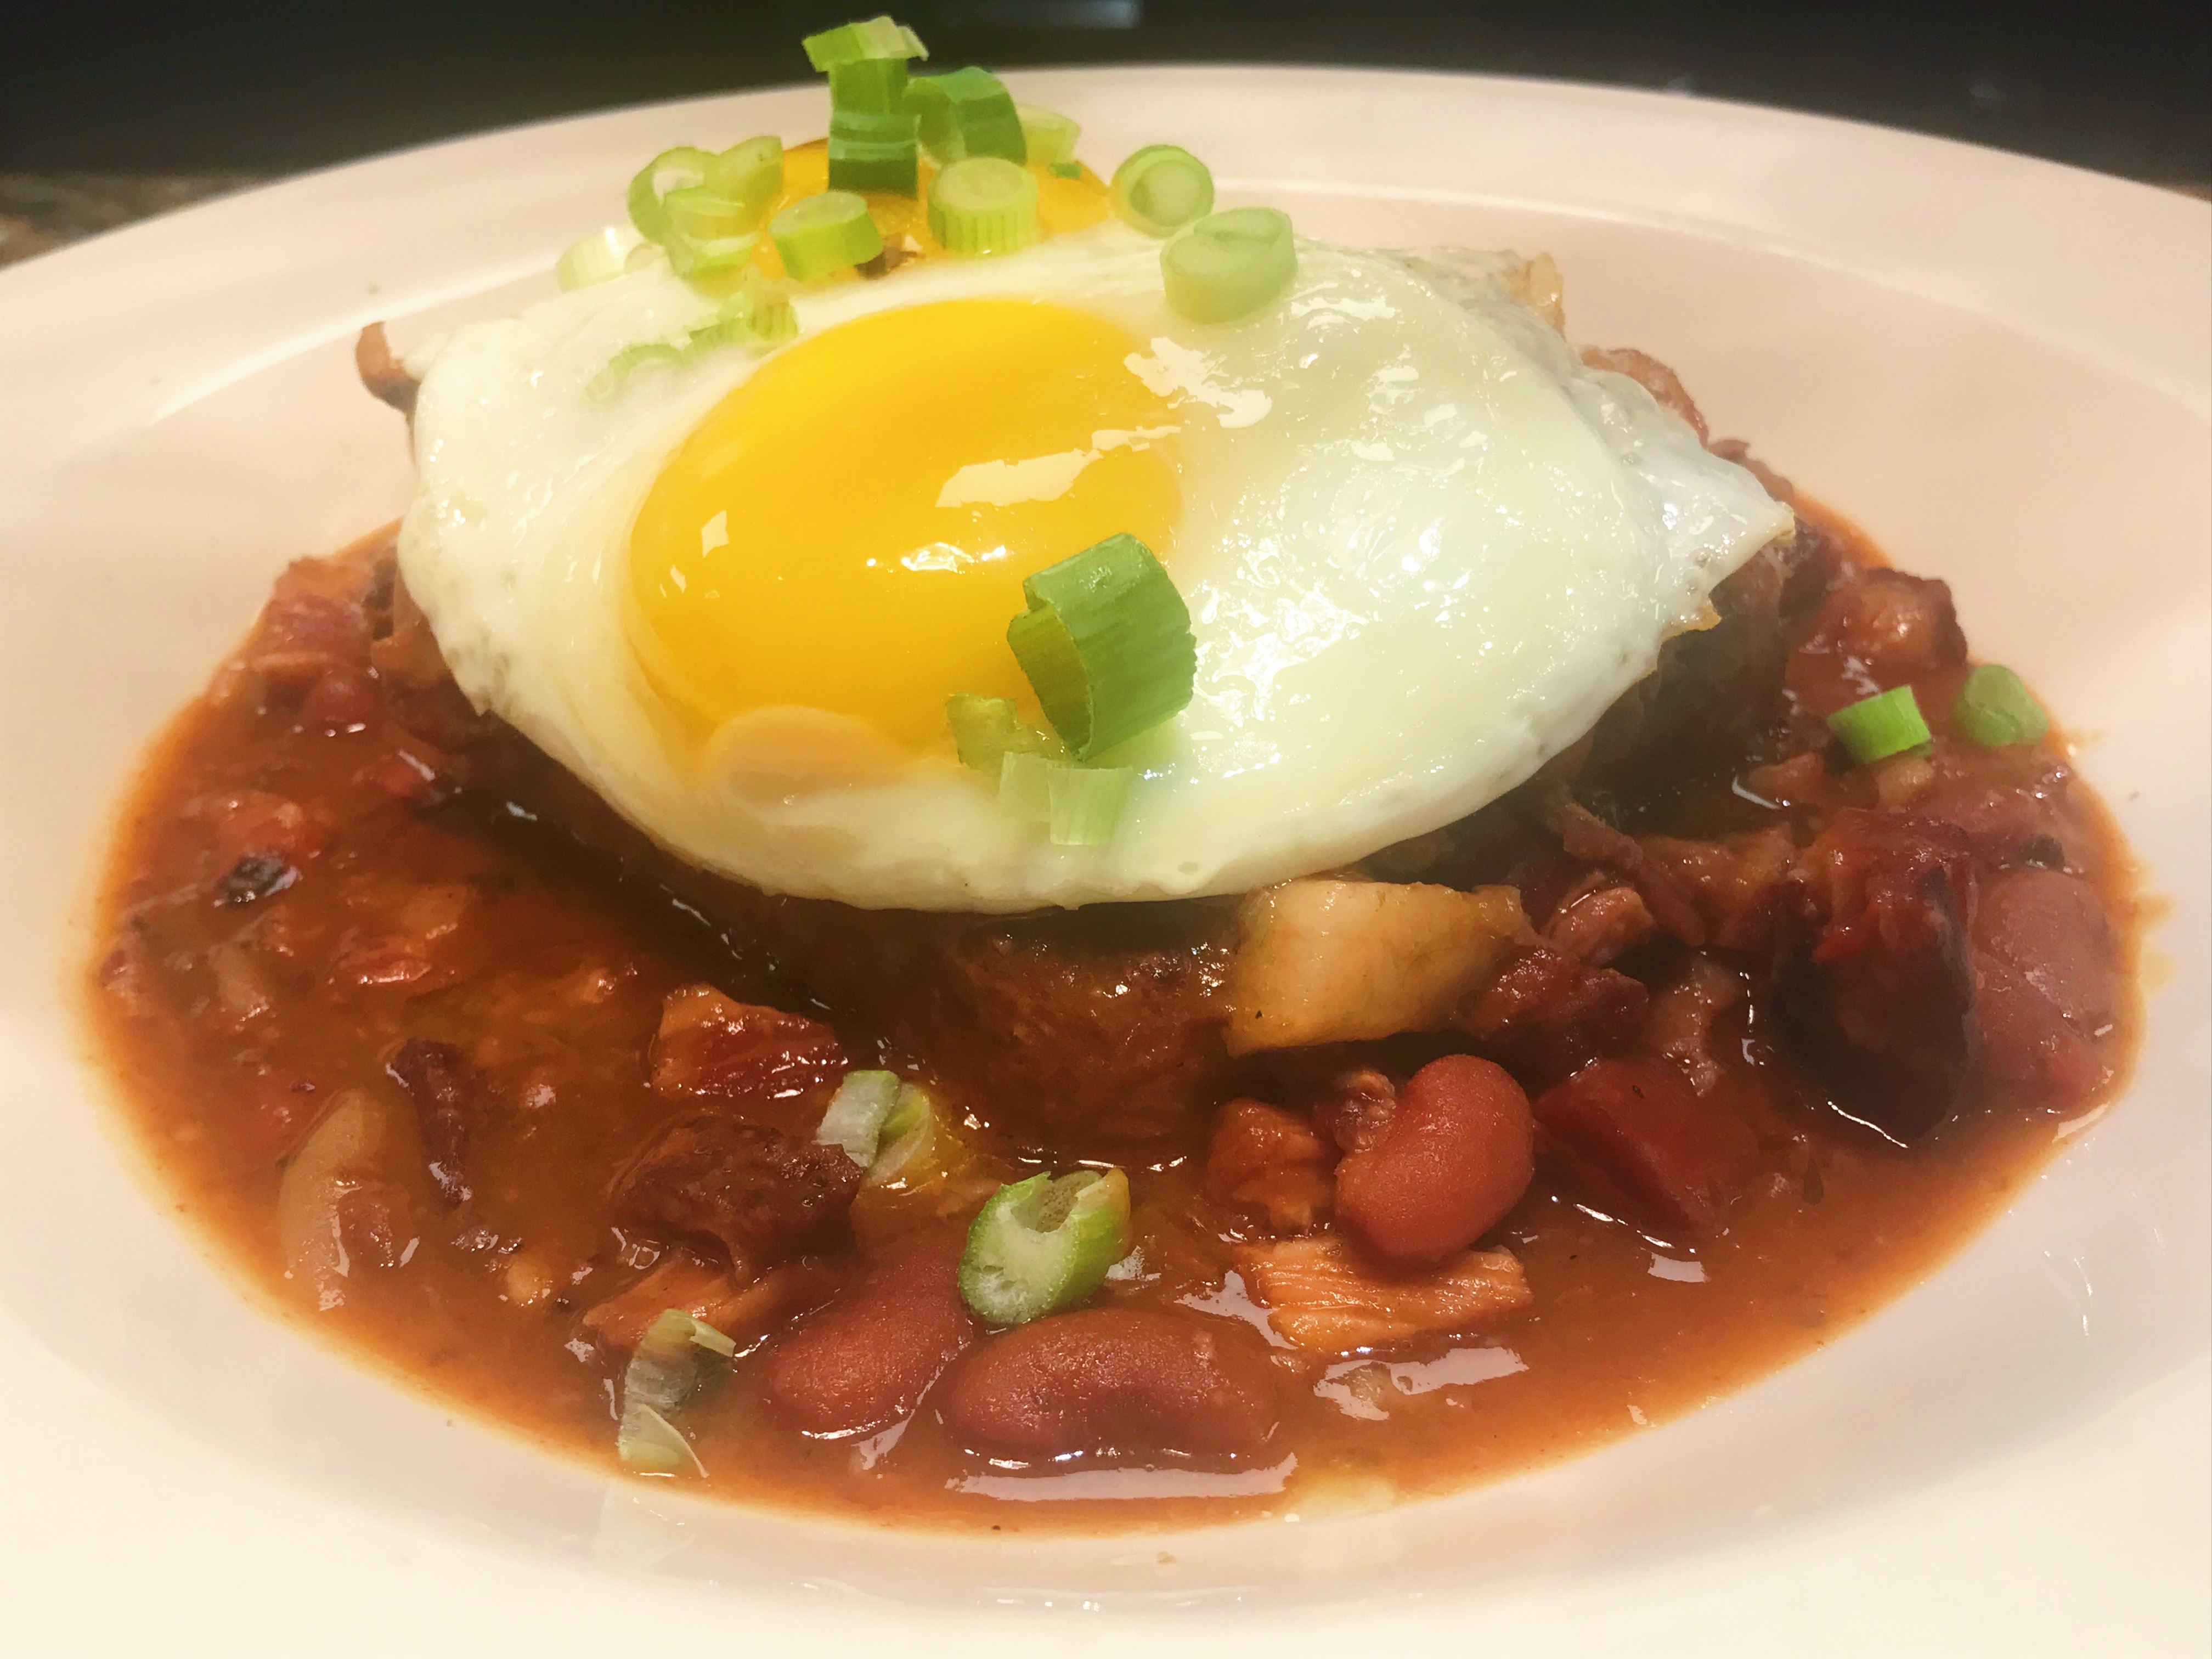 Baked red beans on toast with sunny-side-up eggs.